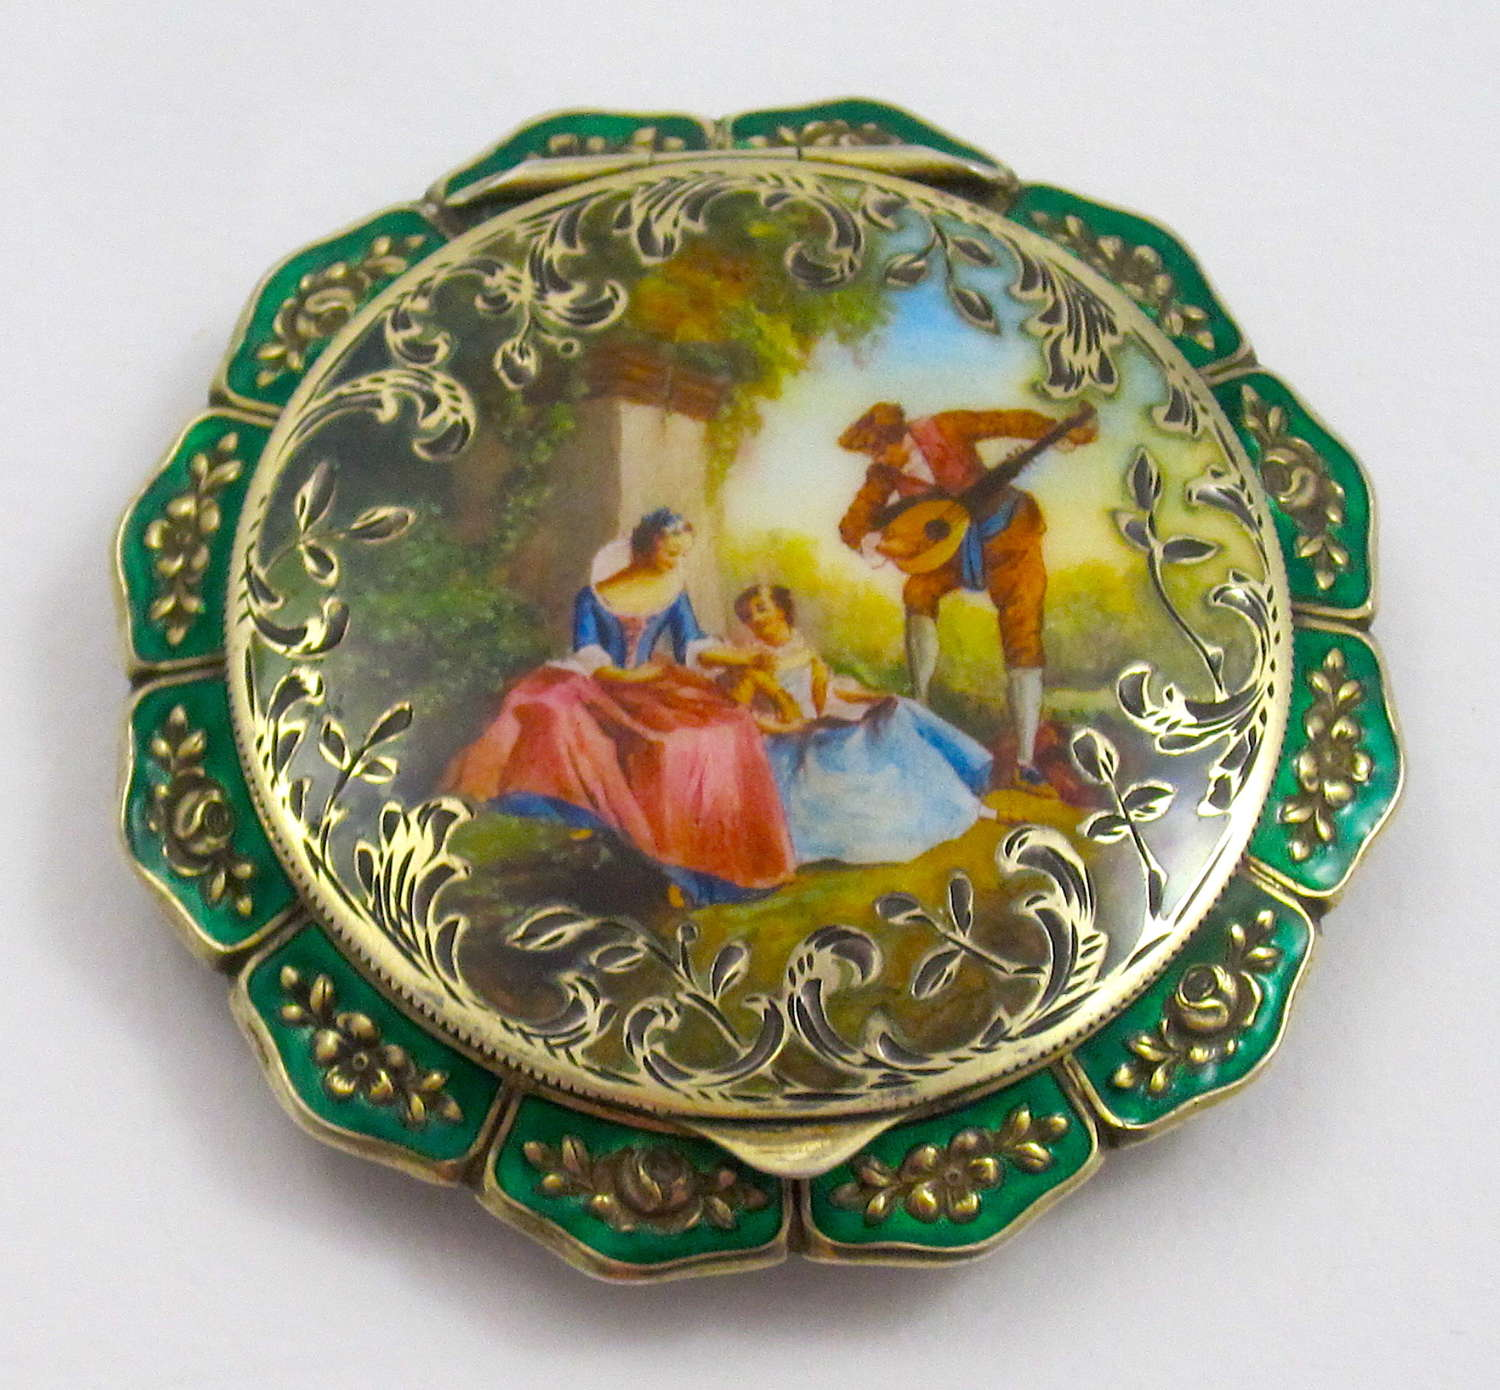 Stunning AntiqueSterling Silver and Guilloche Enamel Compact Case